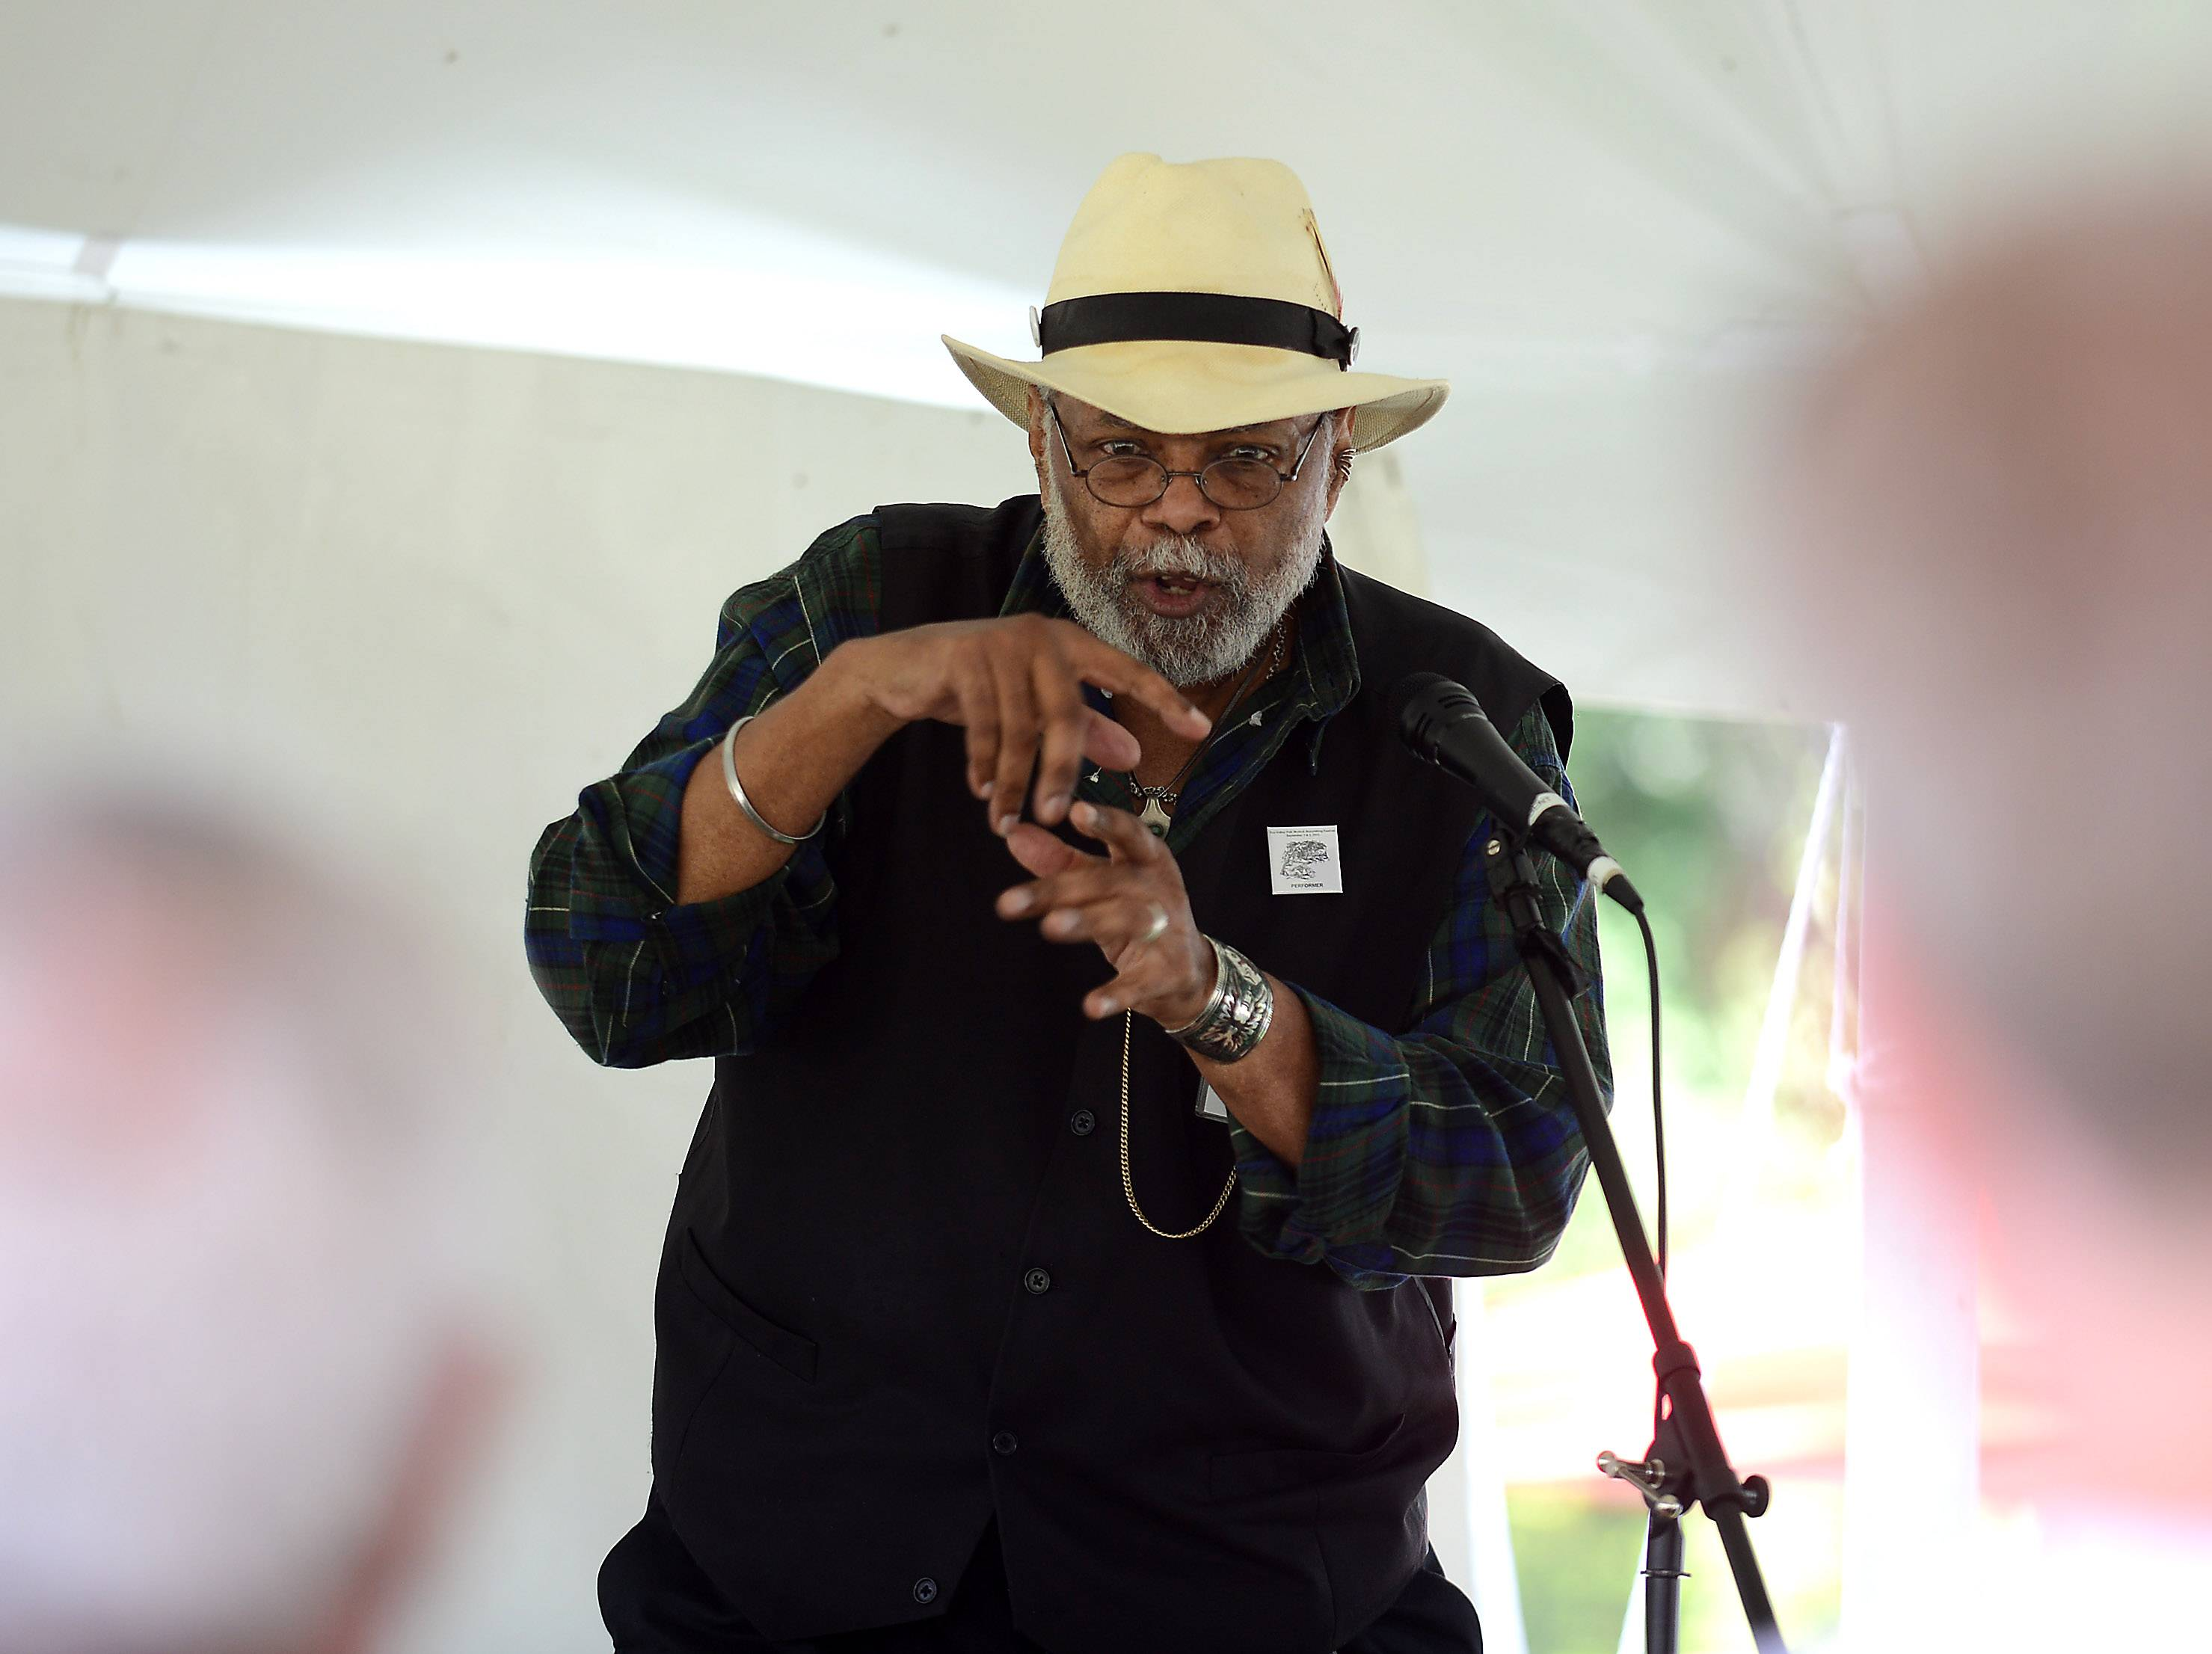 Sparky Rucker of Maryville, Tennessee, weaves a tale about a man who killed the devil for the crowd at the storytelling tent during the 37th annual Fox Valley Folk Music and Storytelling Festival at Island Park in Geneva.